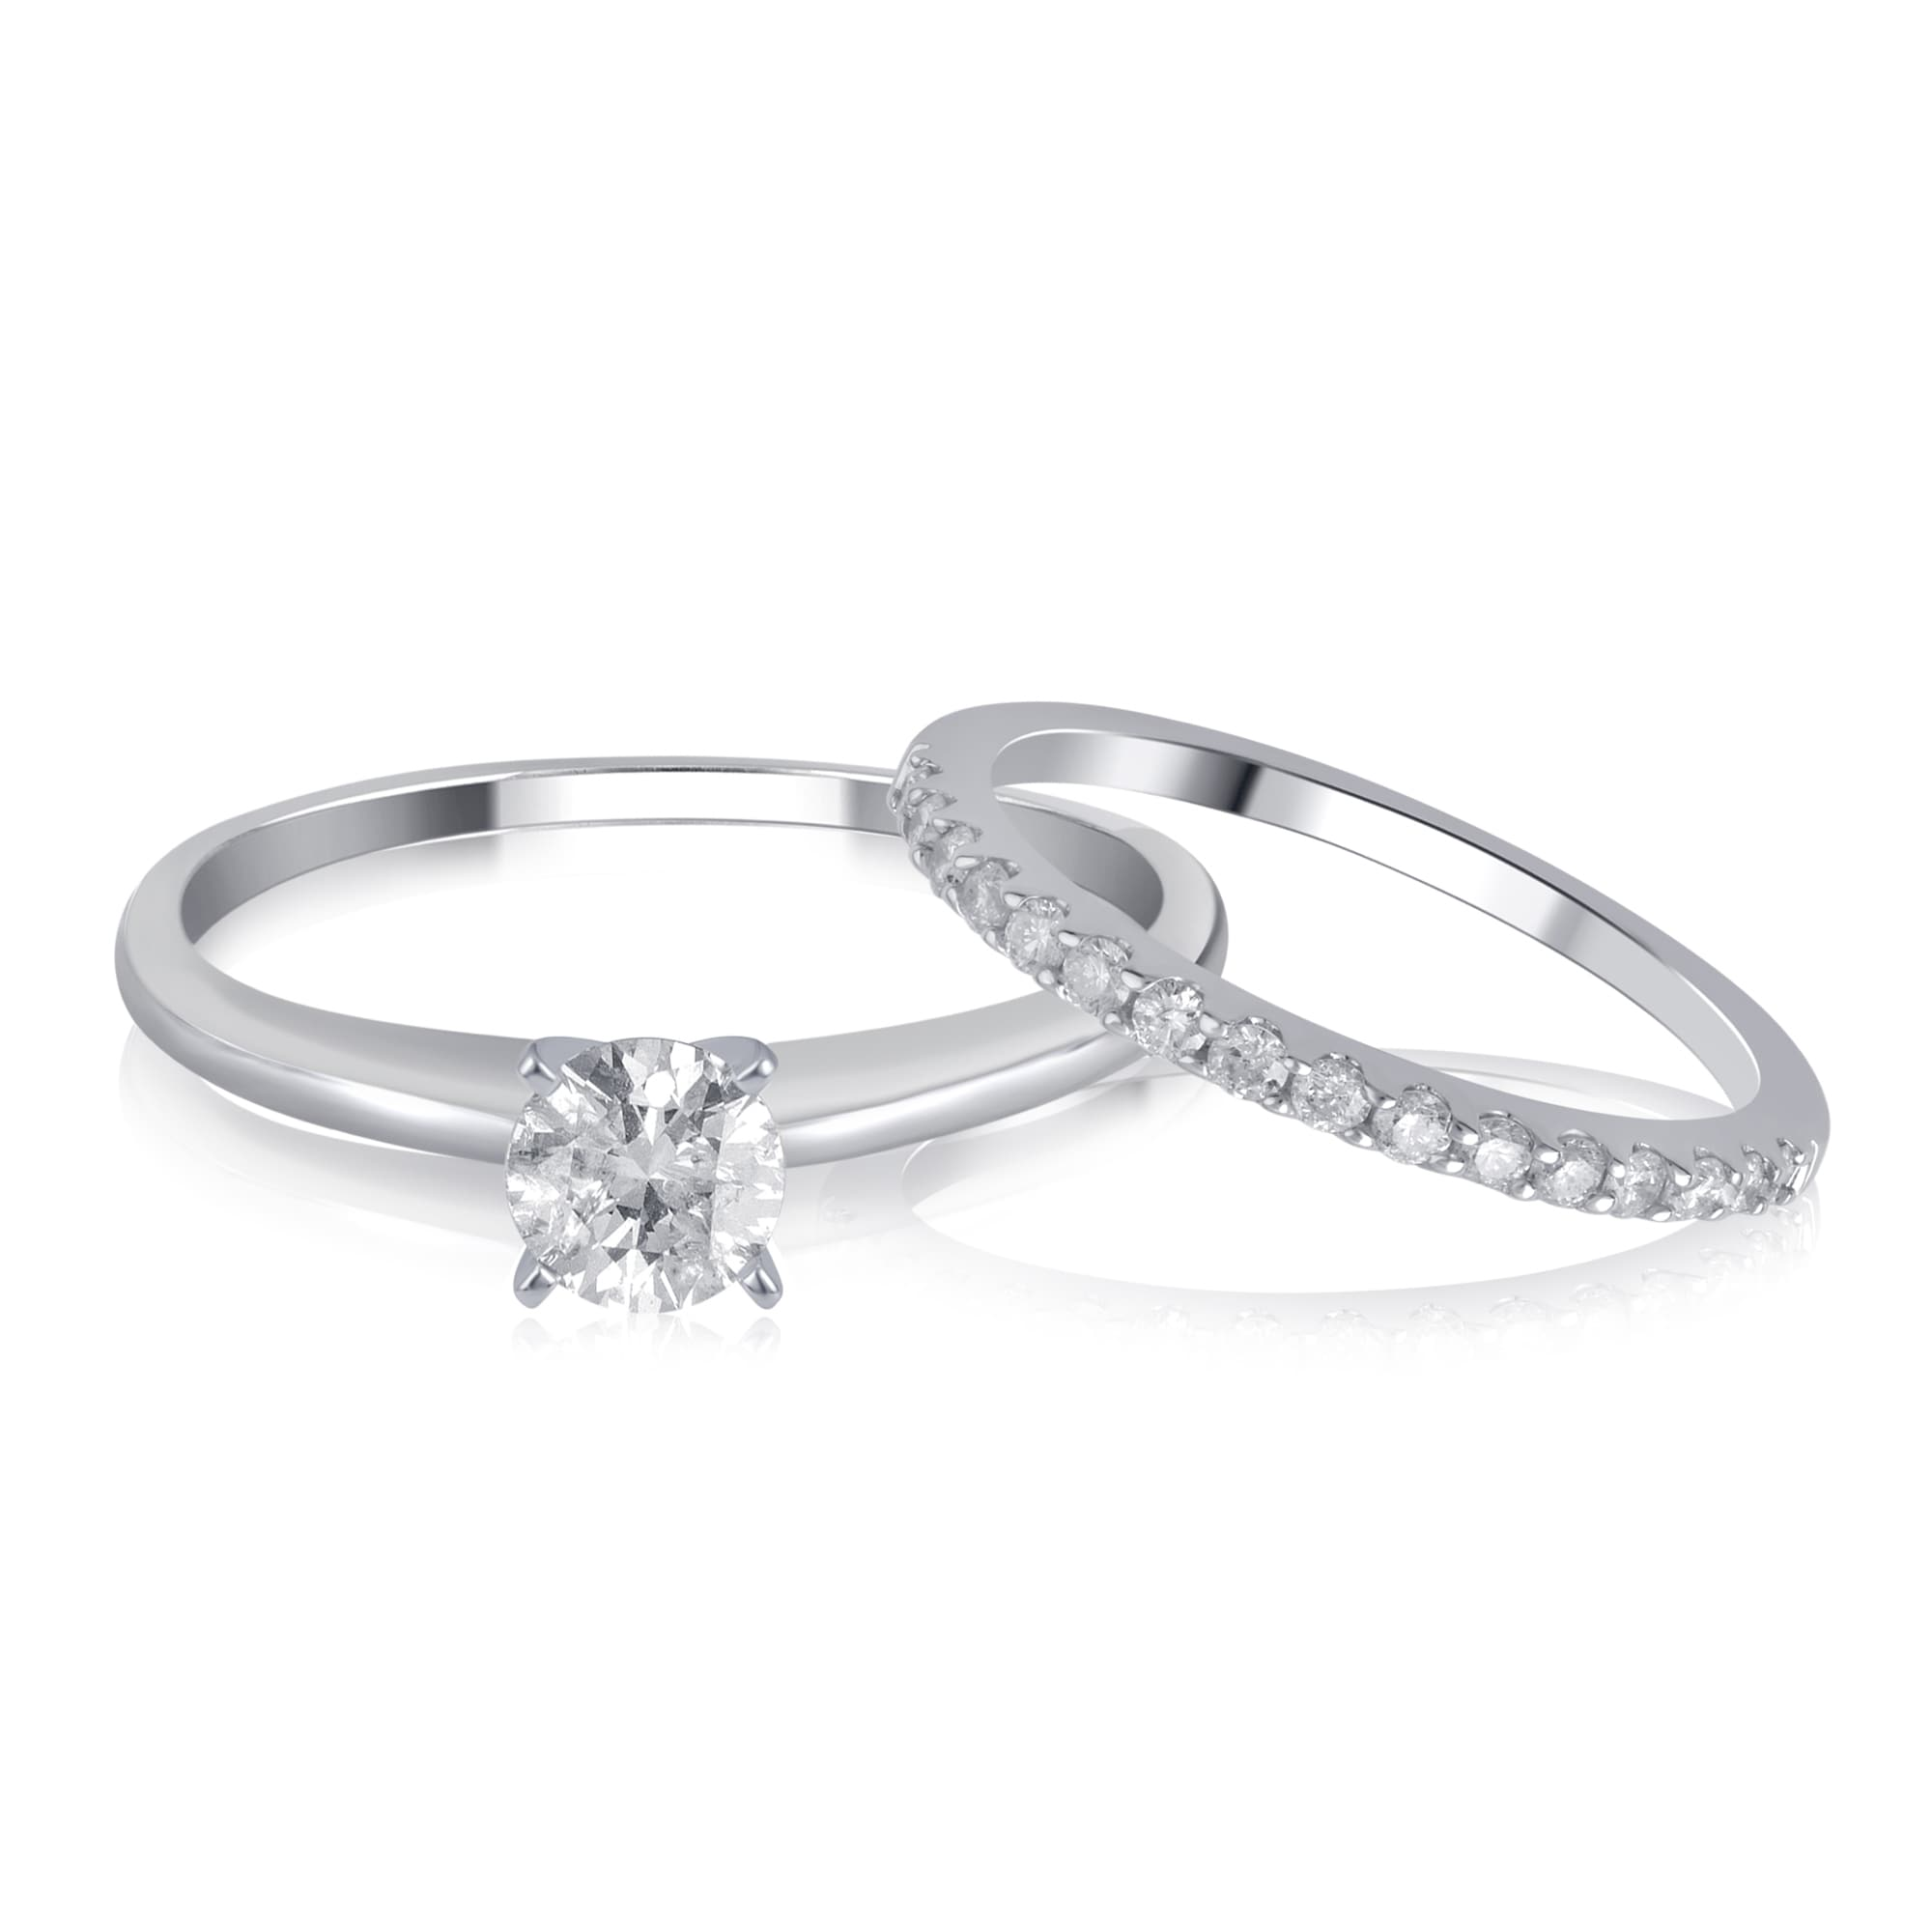 Buy Bridal Sets Clearance Liquidation Online At Overstock Our Best Wedding Ring Set Deals: Bridal Wedding Ring Sets Clearance At Websimilar.org